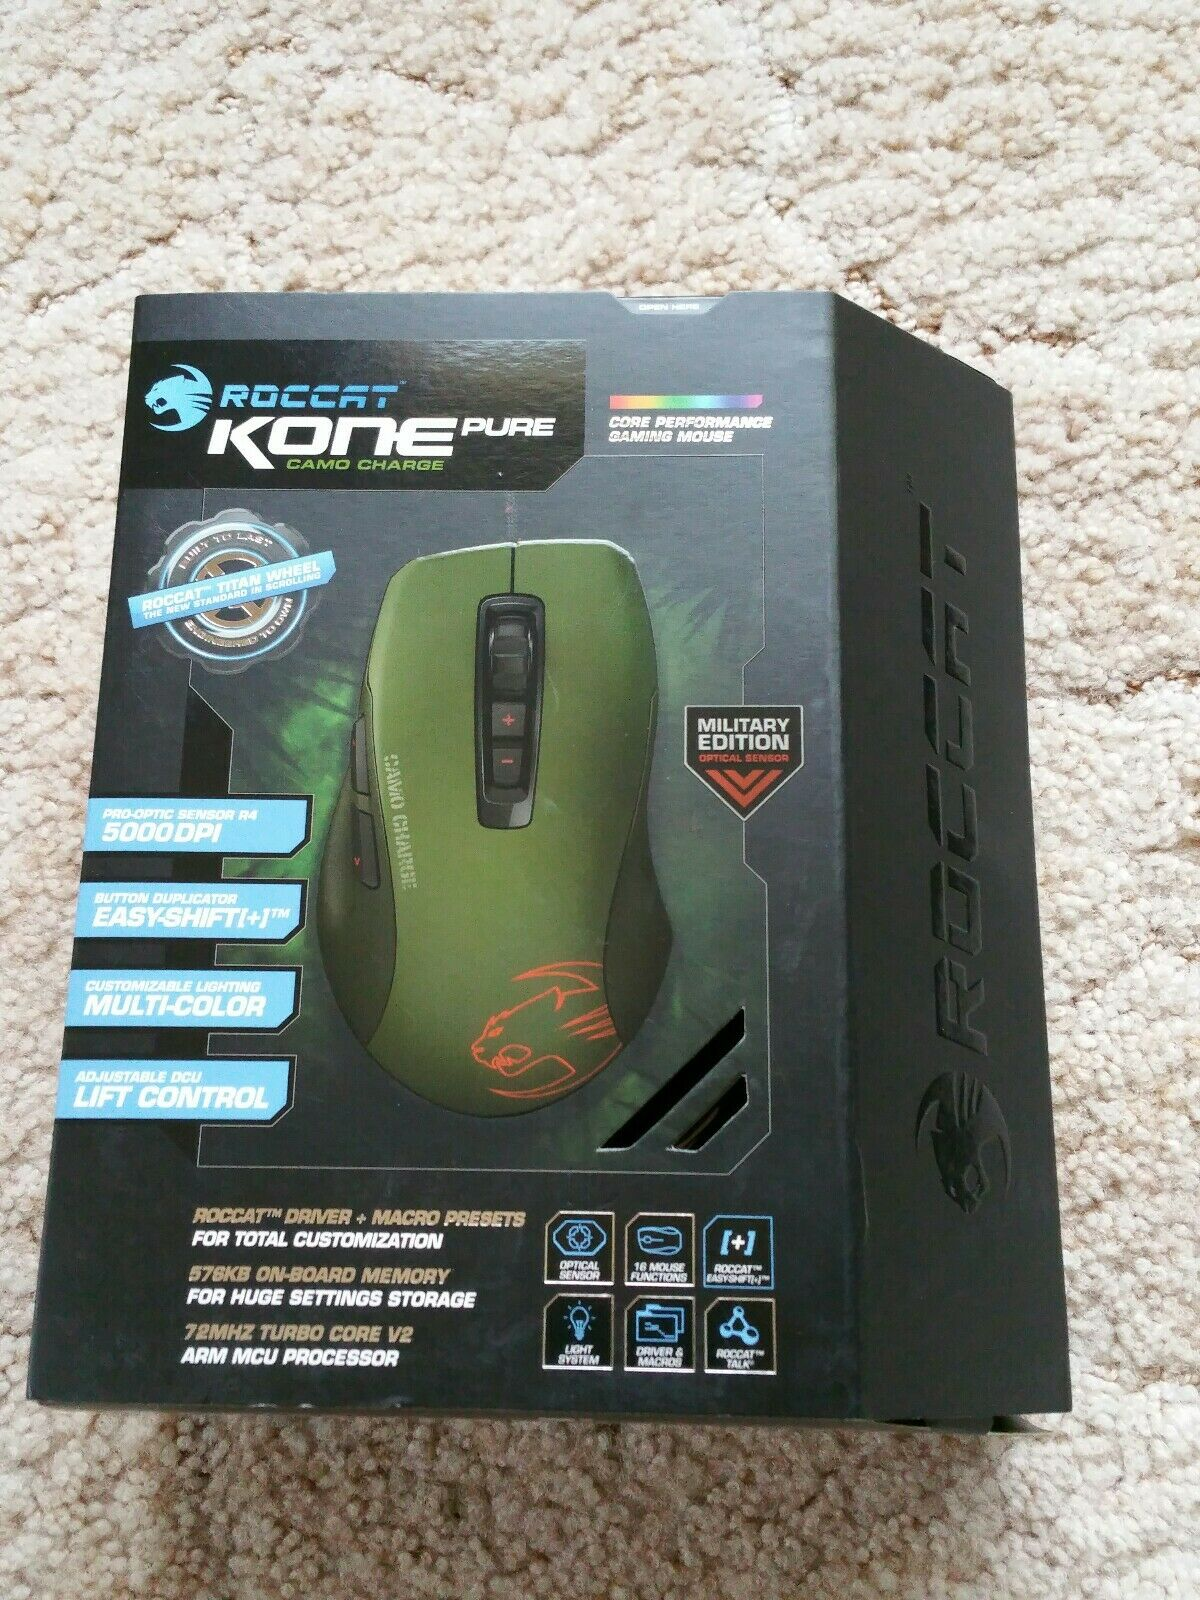 EAN 4250288143296 product image for Roccat Kone Pure Gaming Mouse. Military Edition Camo Charge. 5000dpi 1000hz Pr | upcitemdb.com